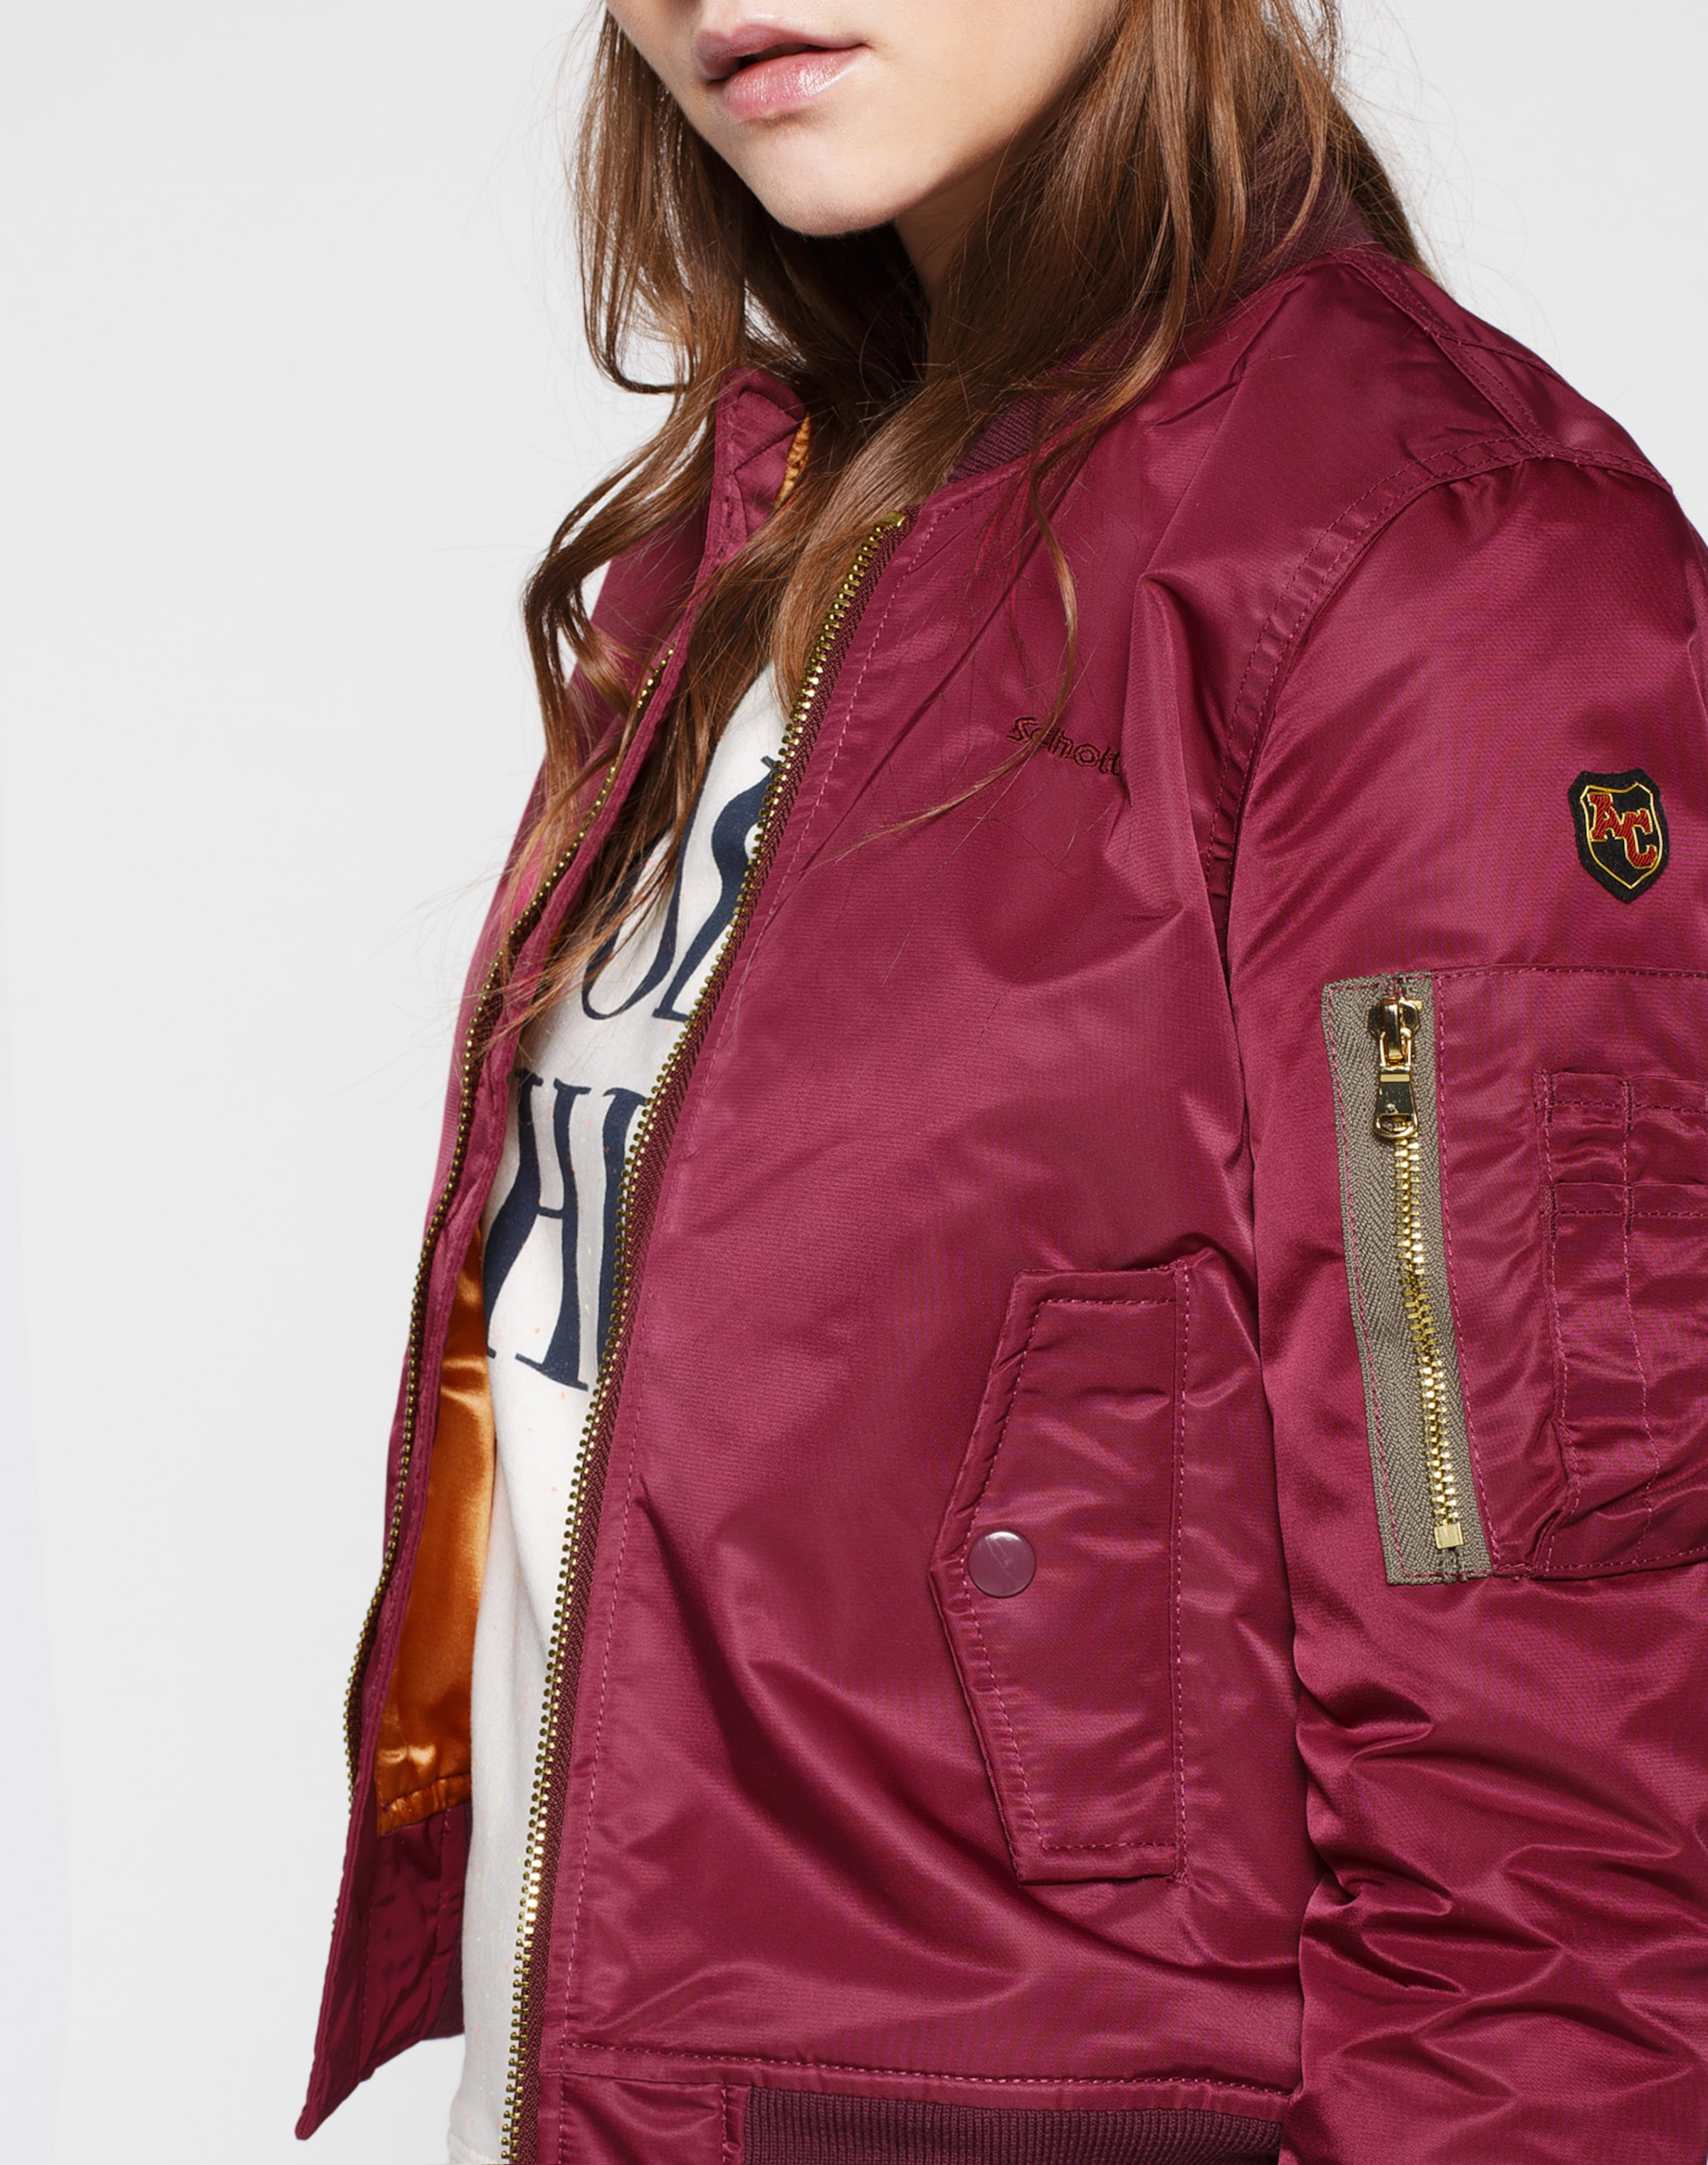 In Bordeaux Nyc Schott Bomberjacket sCQhrtdx